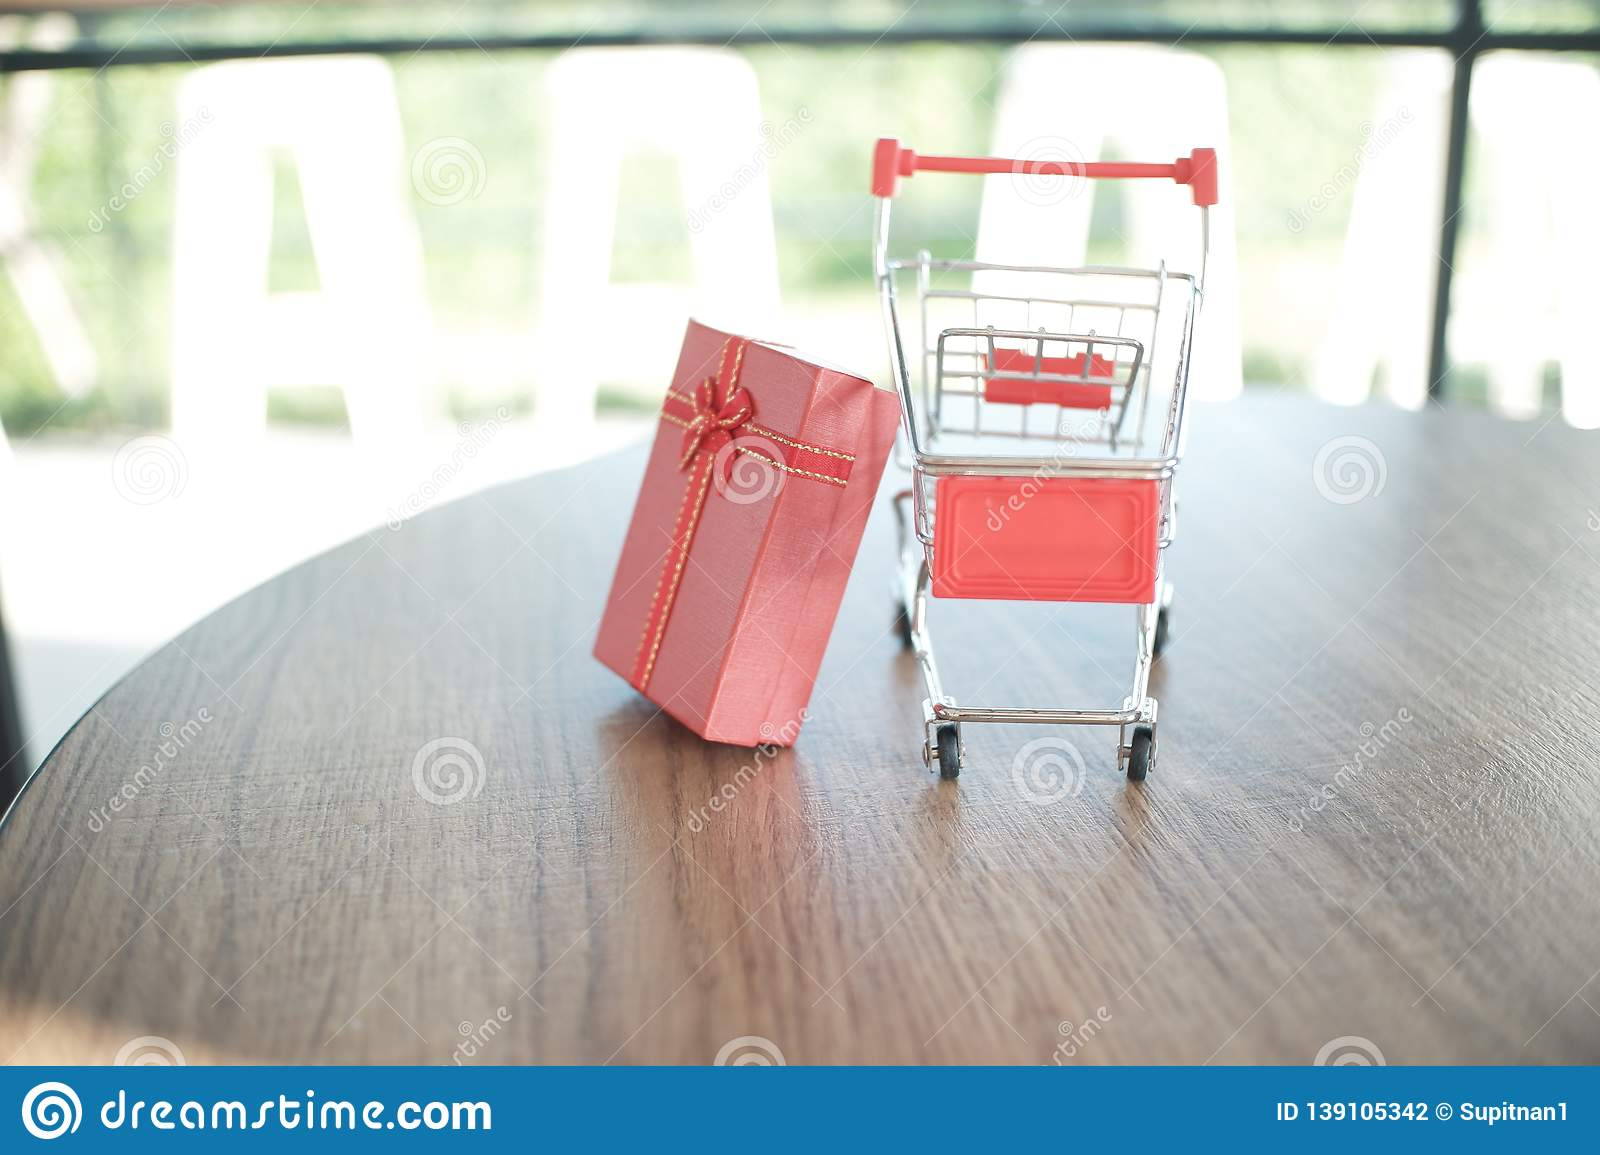 Close up red gift box and shopping cart on table for shopping and e-commerce concept